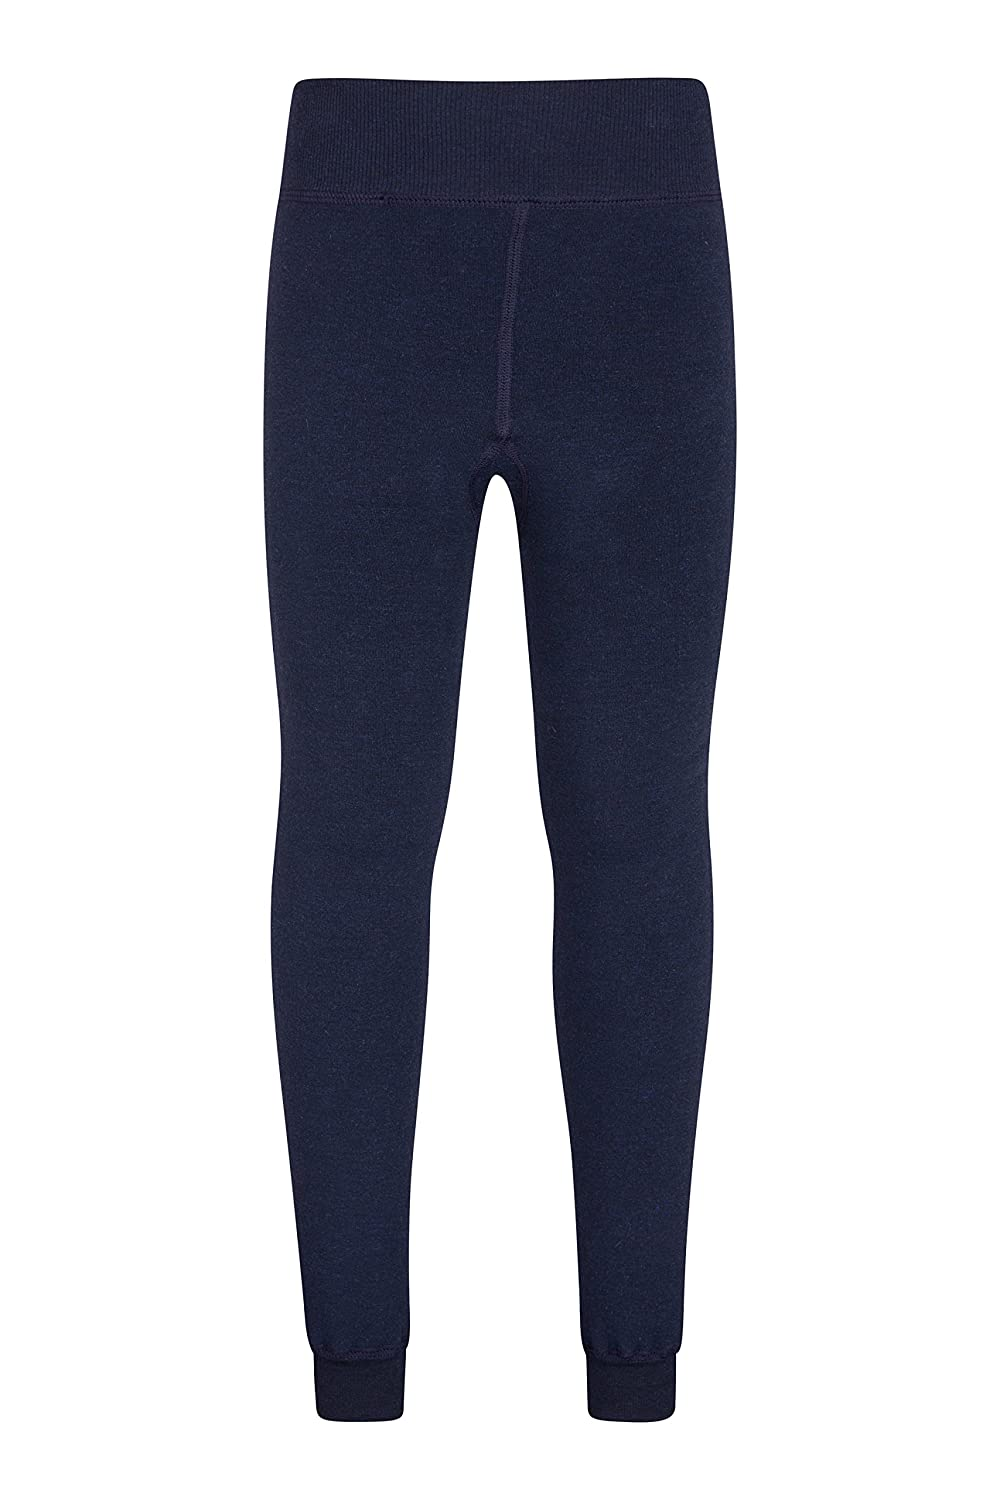 Mountain Warehouse Winter Essential Youth Leggings - Breathable Kids Leggings, Quick Wicking, Heat Retention - Fleece Lined, Extra Comfort - Great As A Winter Base Layer